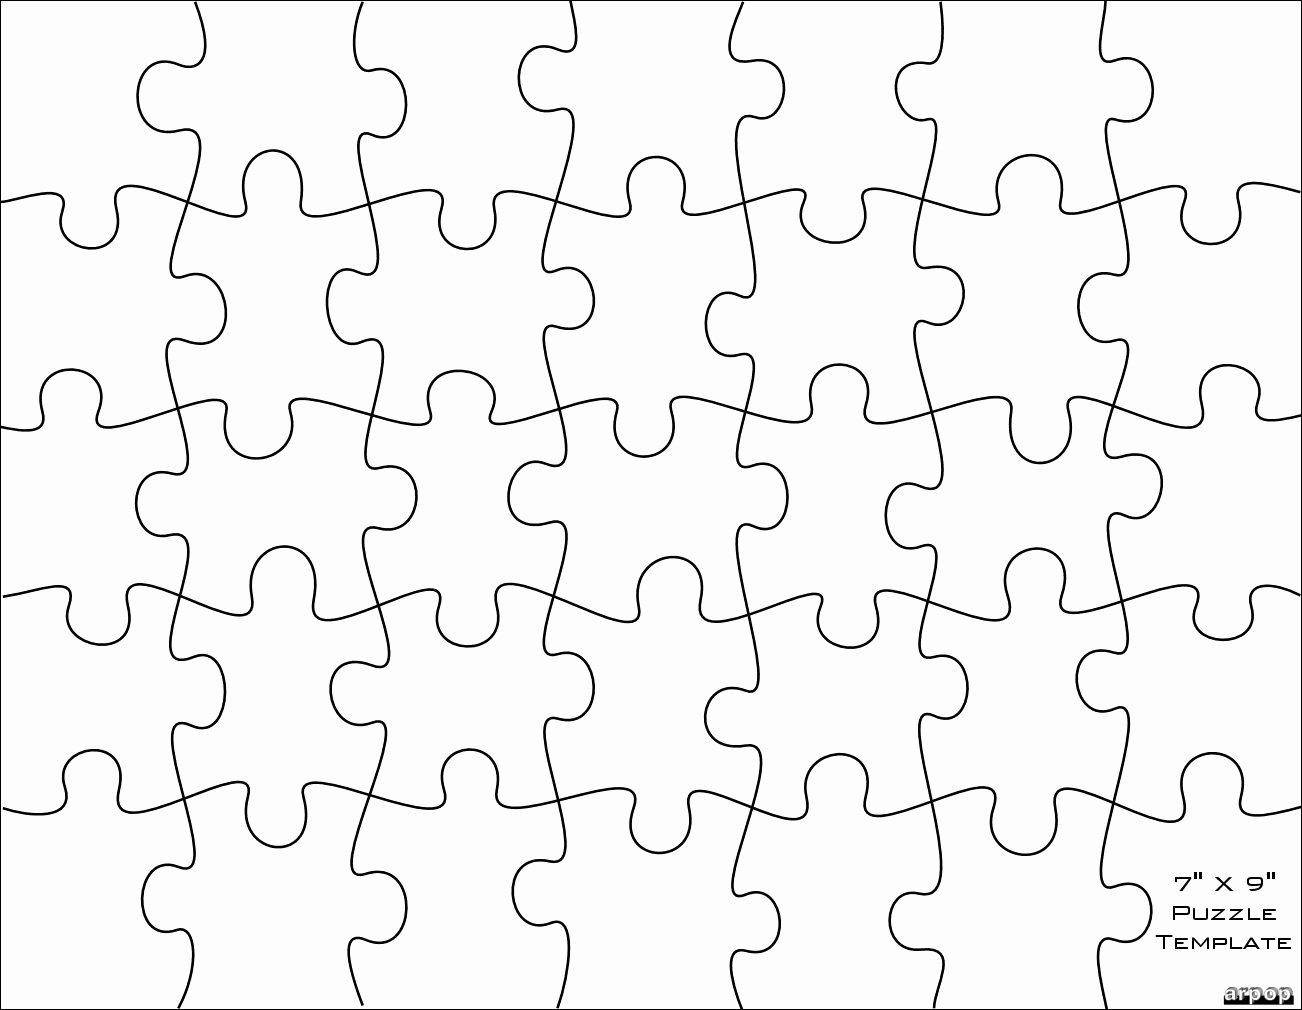 Blank Puzzle Pieces Template Luxury Free Puzzle Pieces Template Download Free Clip Art Free